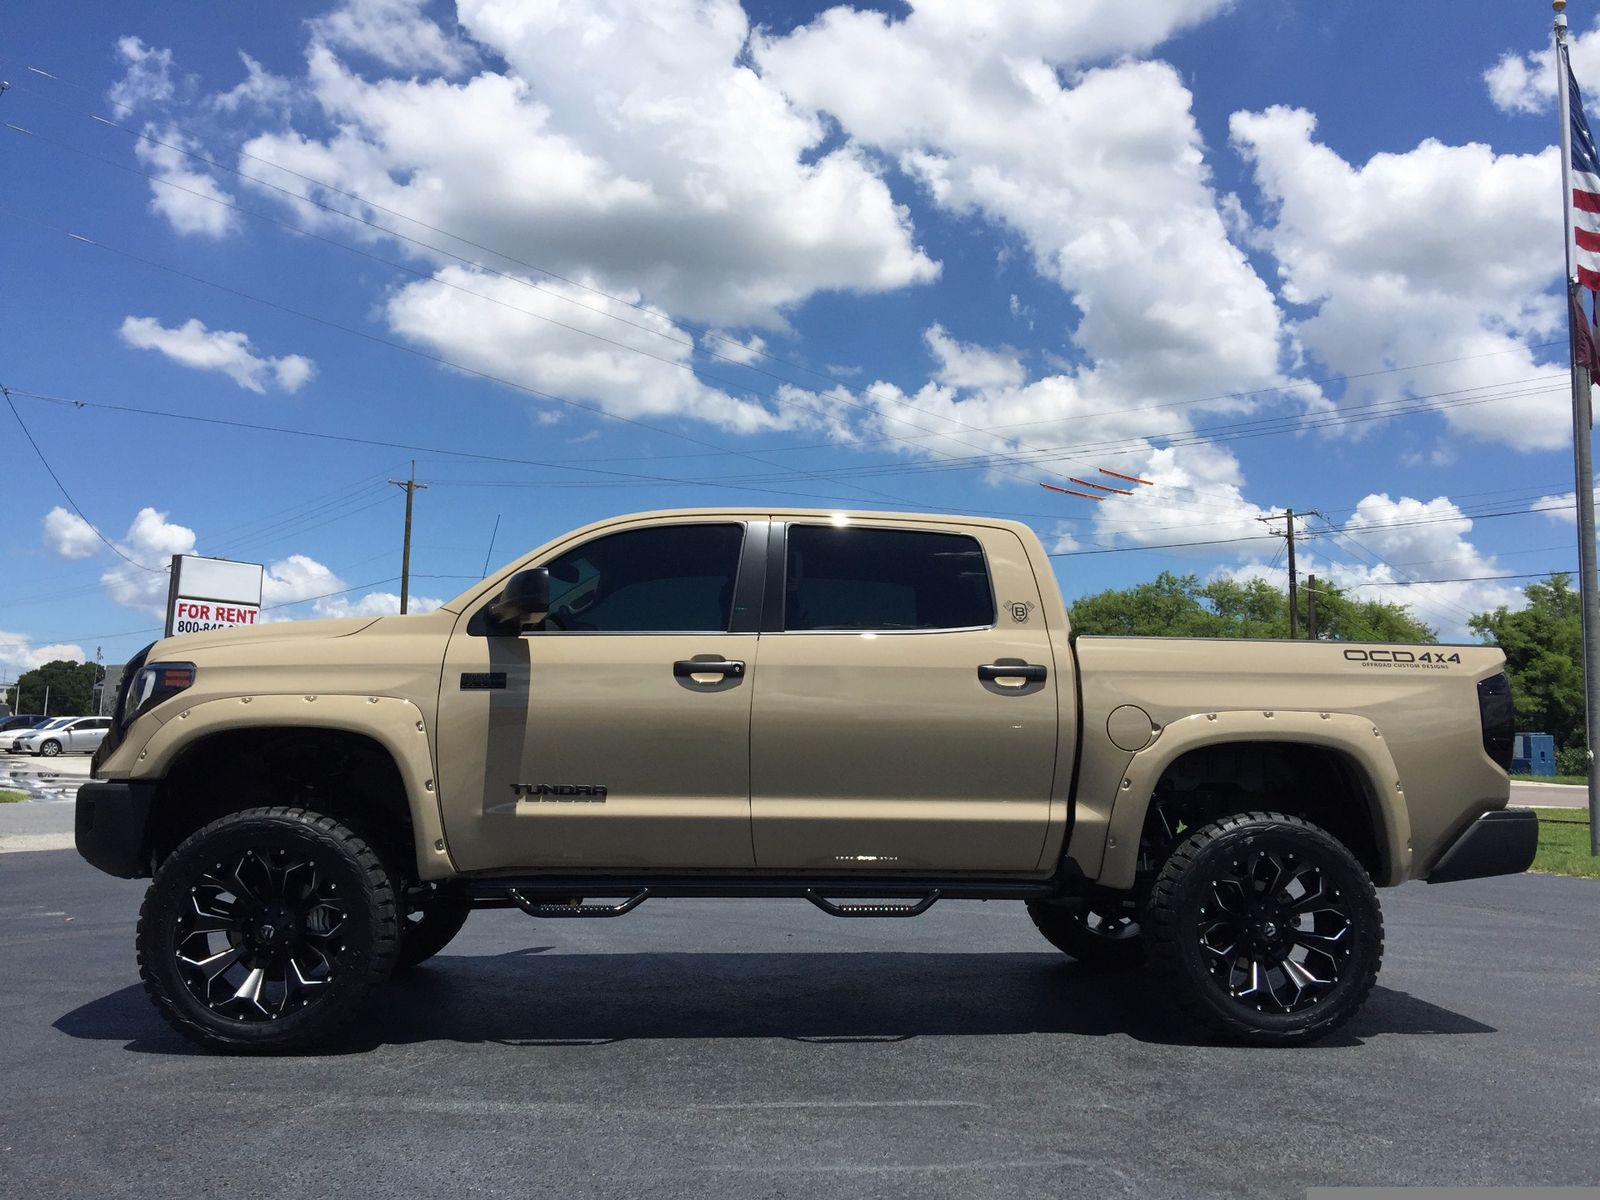 2017 toyota tundra custom lifted crewmax 4x4 v8 leather florida bayshore automotive. Black Bedroom Furniture Sets. Home Design Ideas